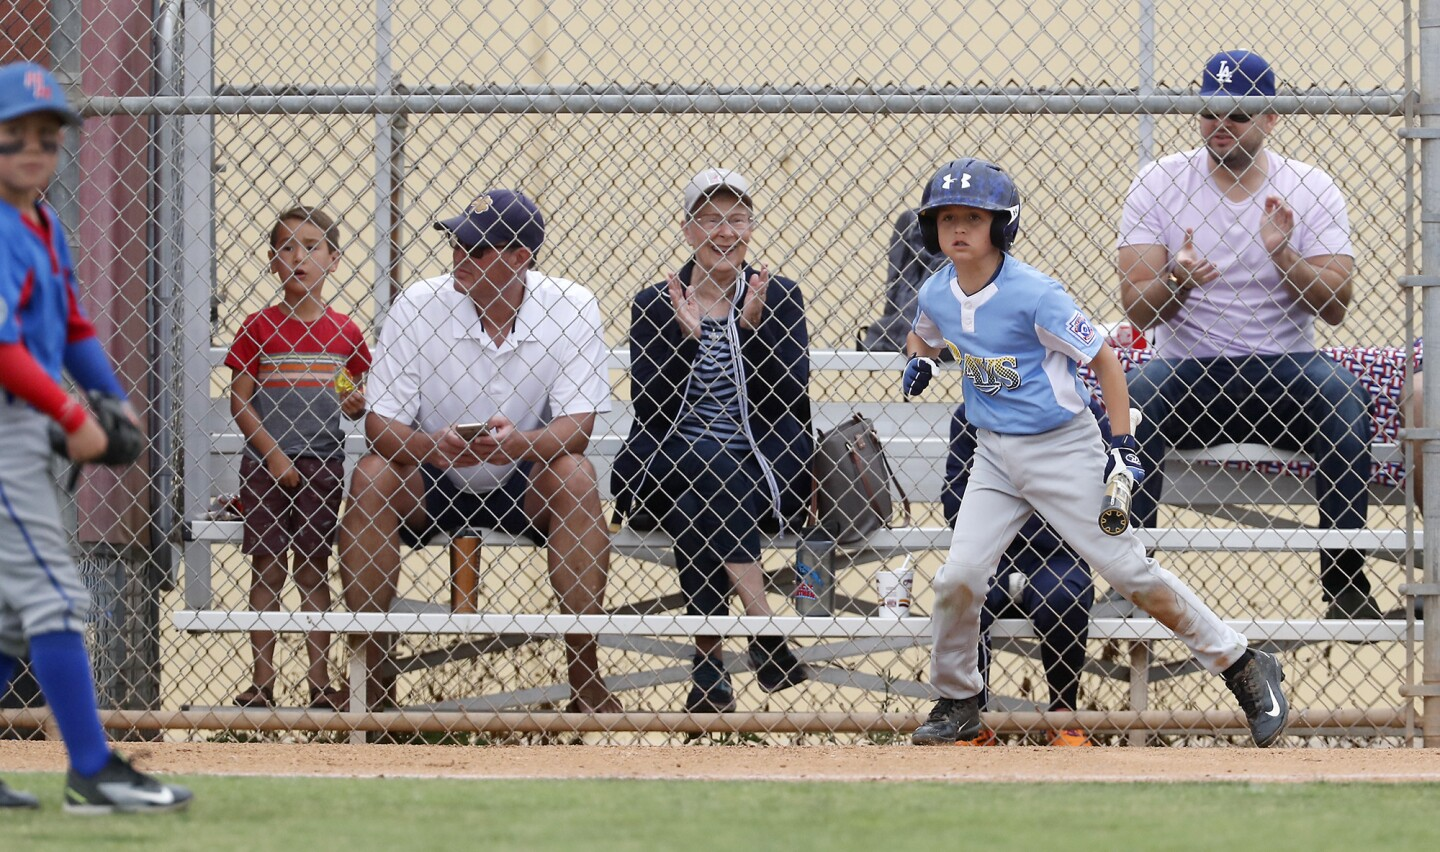 Photo Gallery: Costa Mesa American Little League vs. Huntington West Little League in the District 62 Tournament of Champions Minor B Division championship game